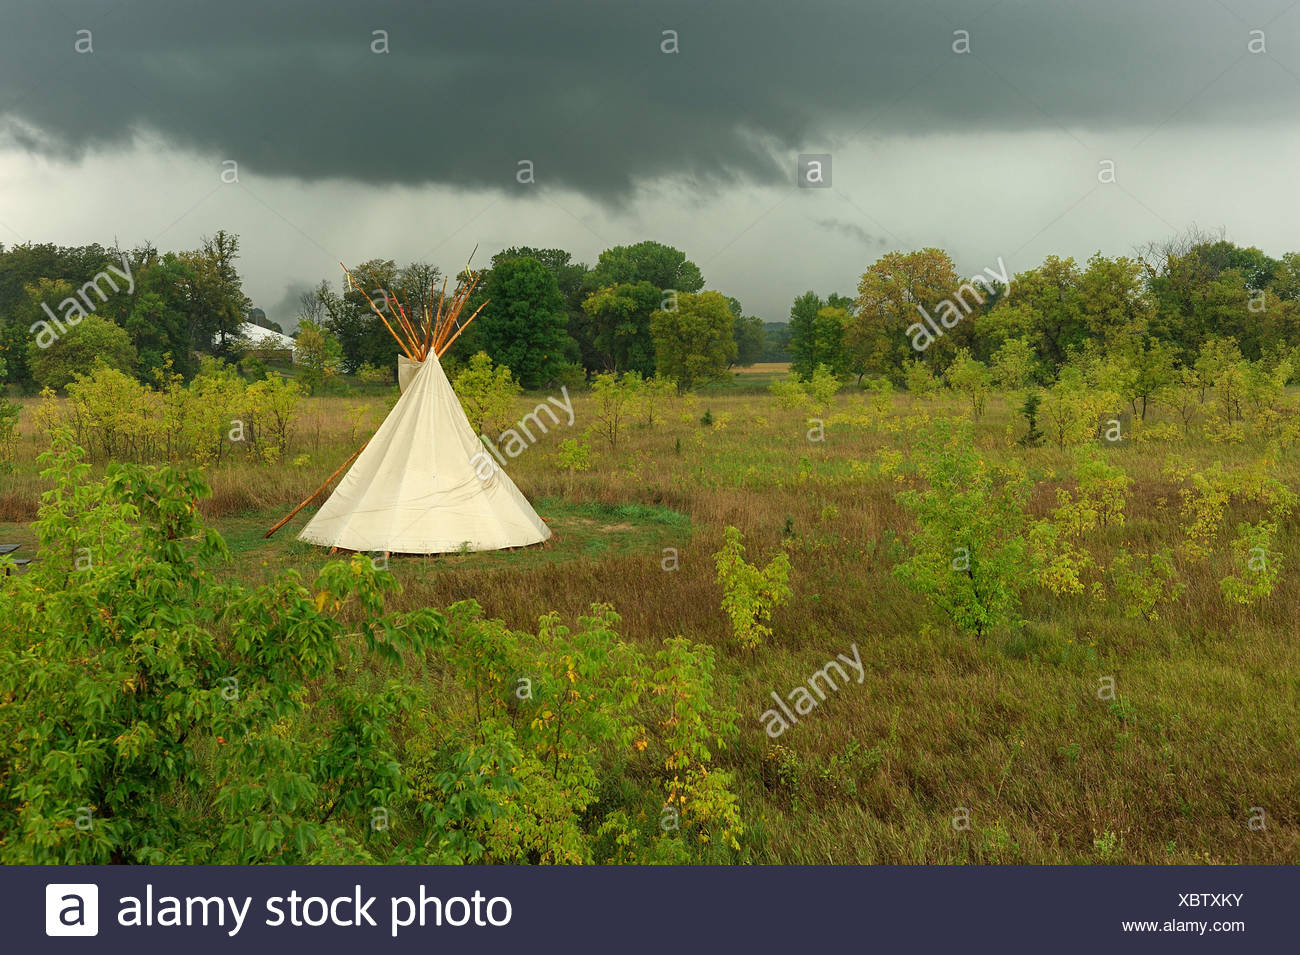 Tipi american indian tent Campground Upper Sioux Agency State Park Granite Falls Minnesota USA America United States of America - Stock Image